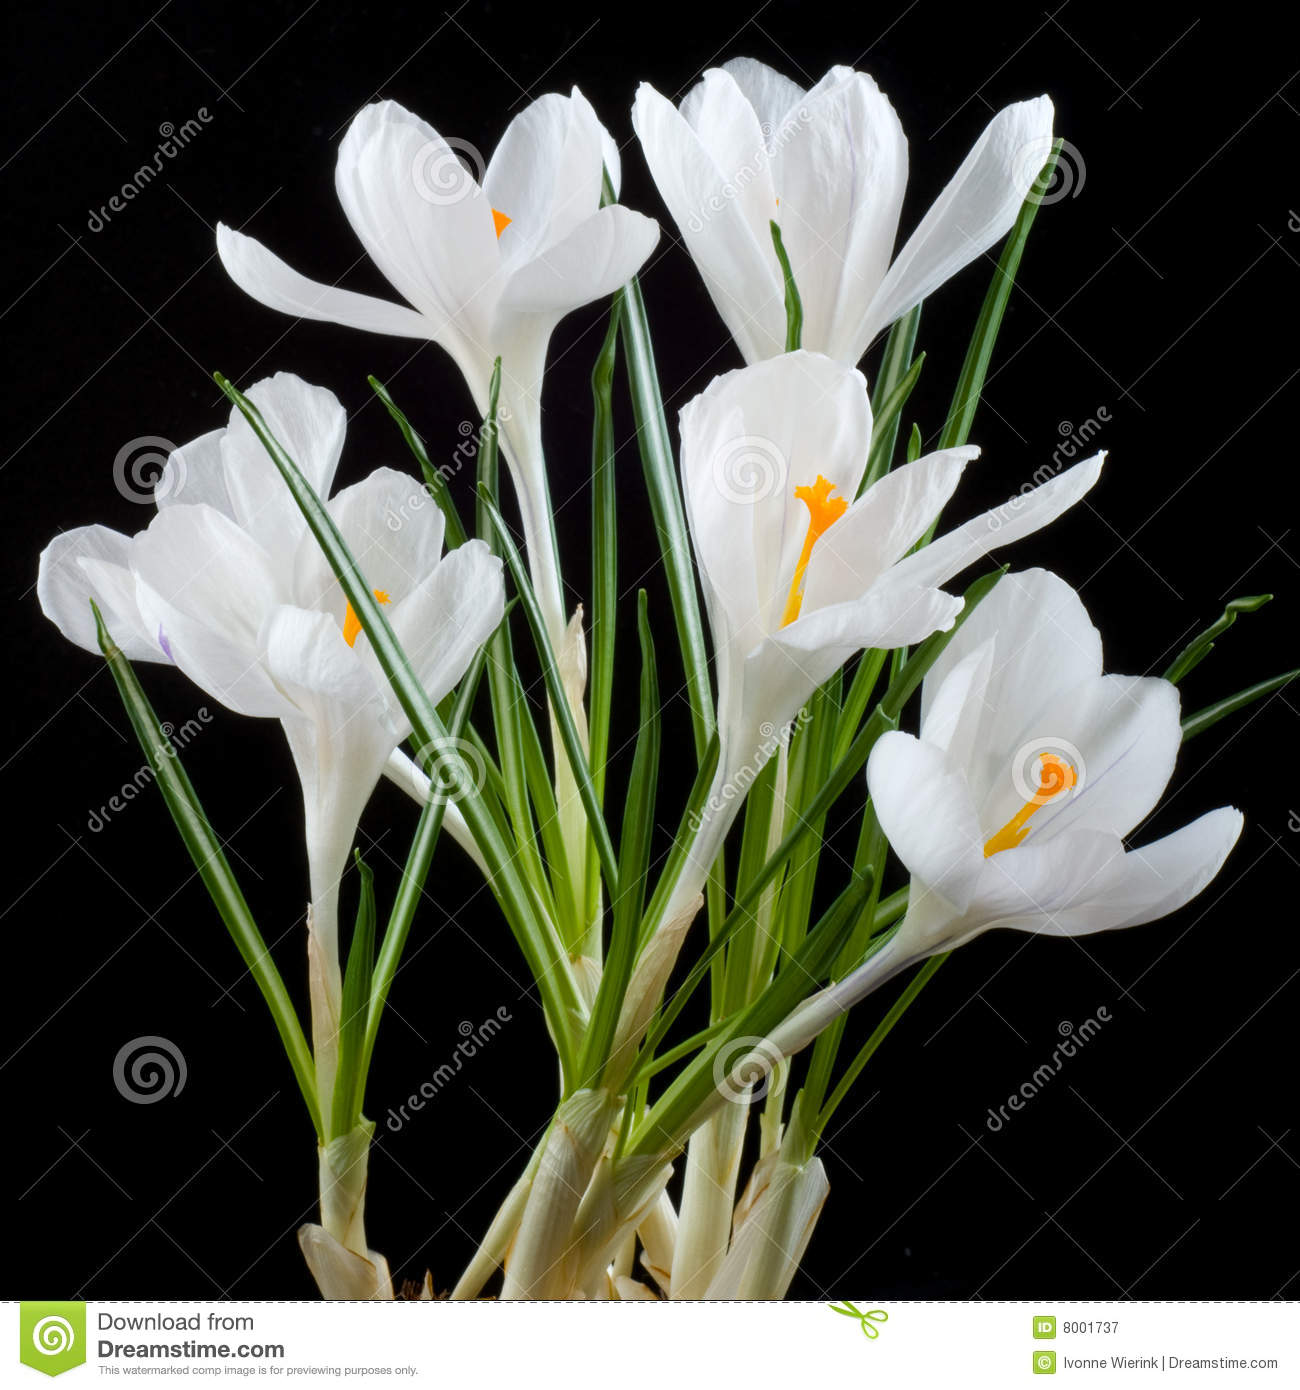 White crocus stock image image of botanical crocus flowers 8001737 white crocus mightylinksfo